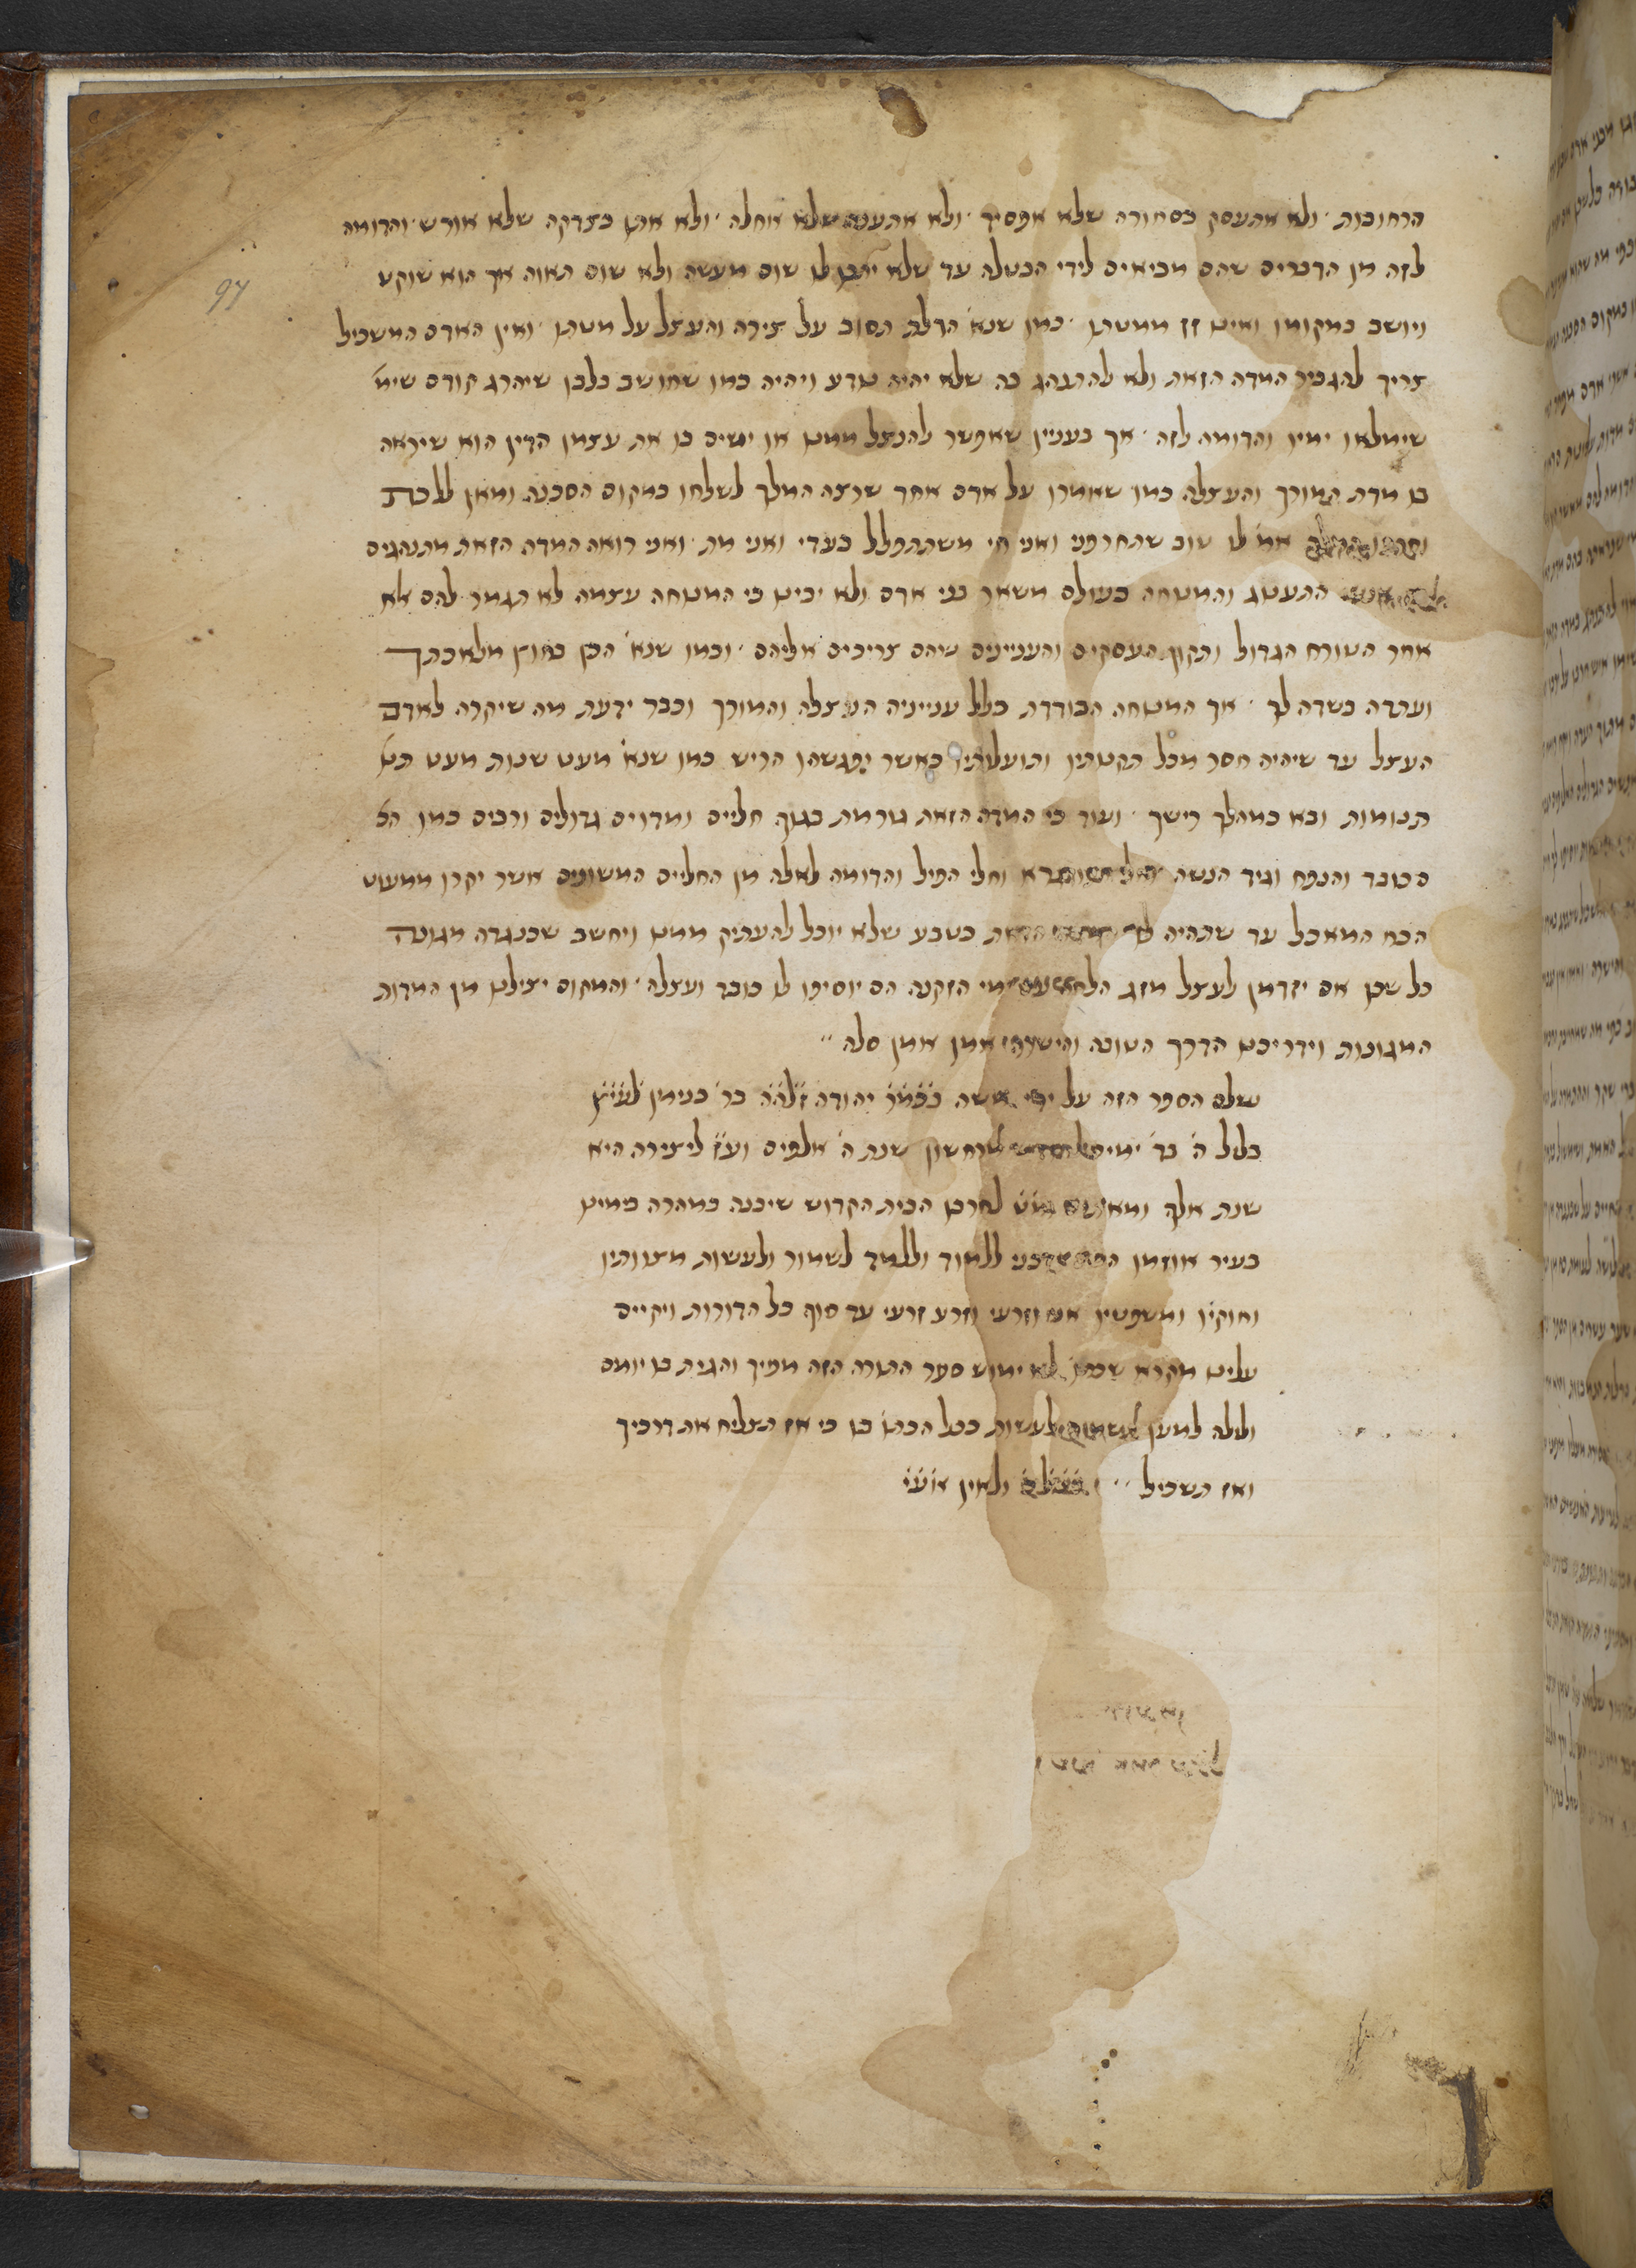 Colophon indicating the place of scribing, Miscellany: Various astronomical and philosophical works, Add MS 26899, Hebrew Manuscripts Digitisation Project, British Library